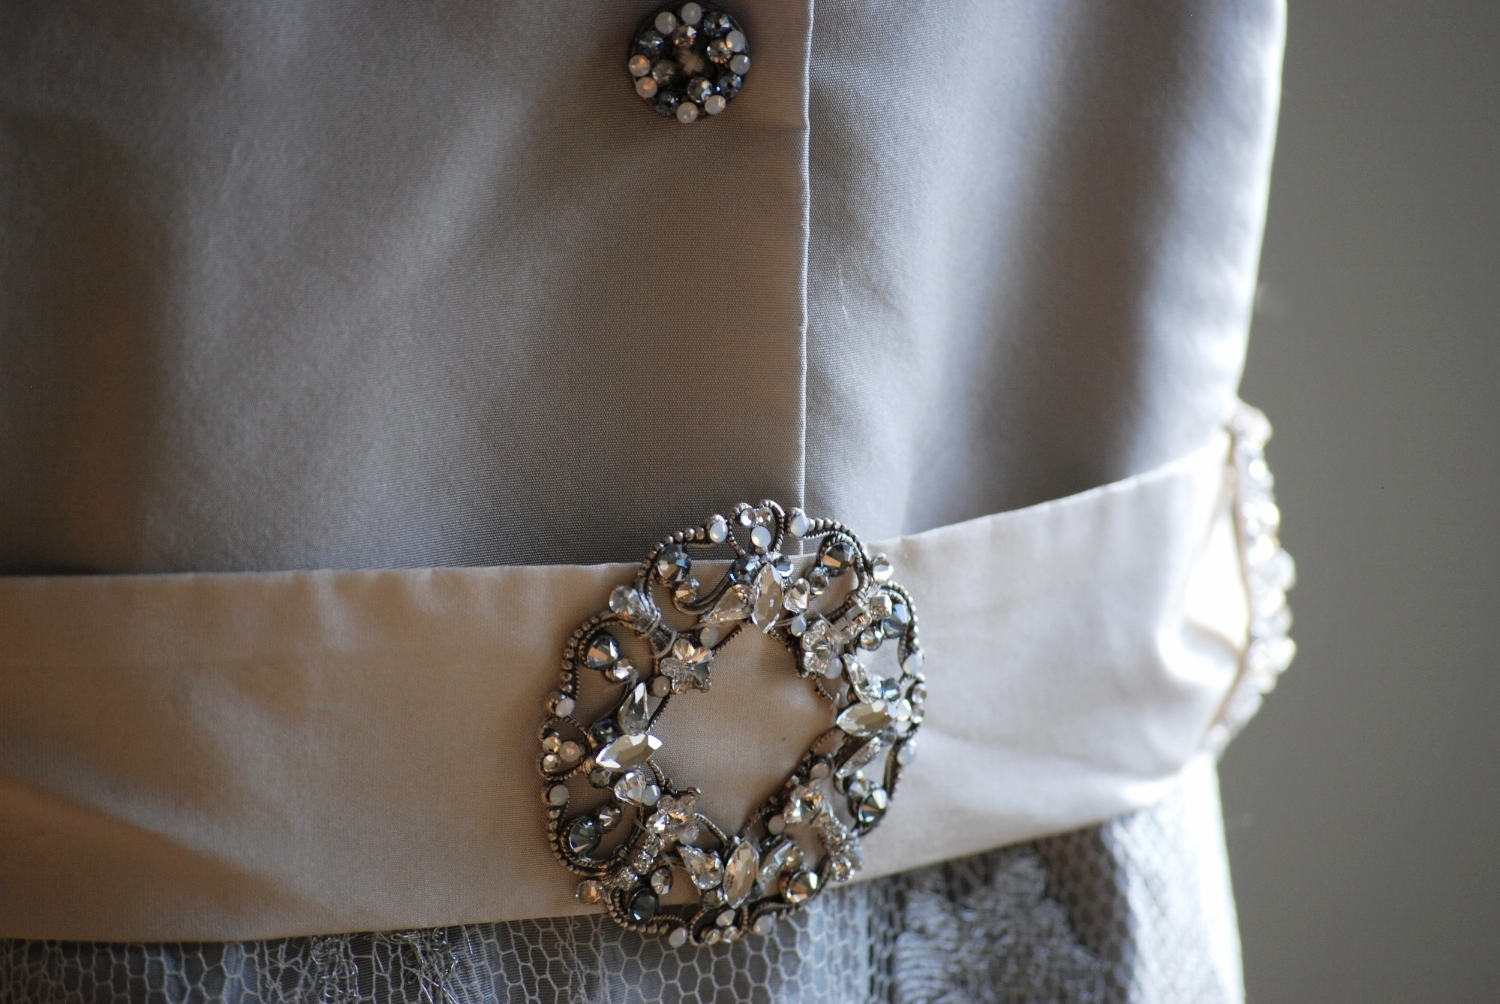 I wanted a Jackie Kennedy style with a menswear influence. I handmade the buttons and belt buckle The soft toned palette of gray, ivory, and taupe was in my mind from the beginning. My skirt was made of iridescent silk taffeta with a metallic silver and ivory French lace overlay. I loved everything about it!